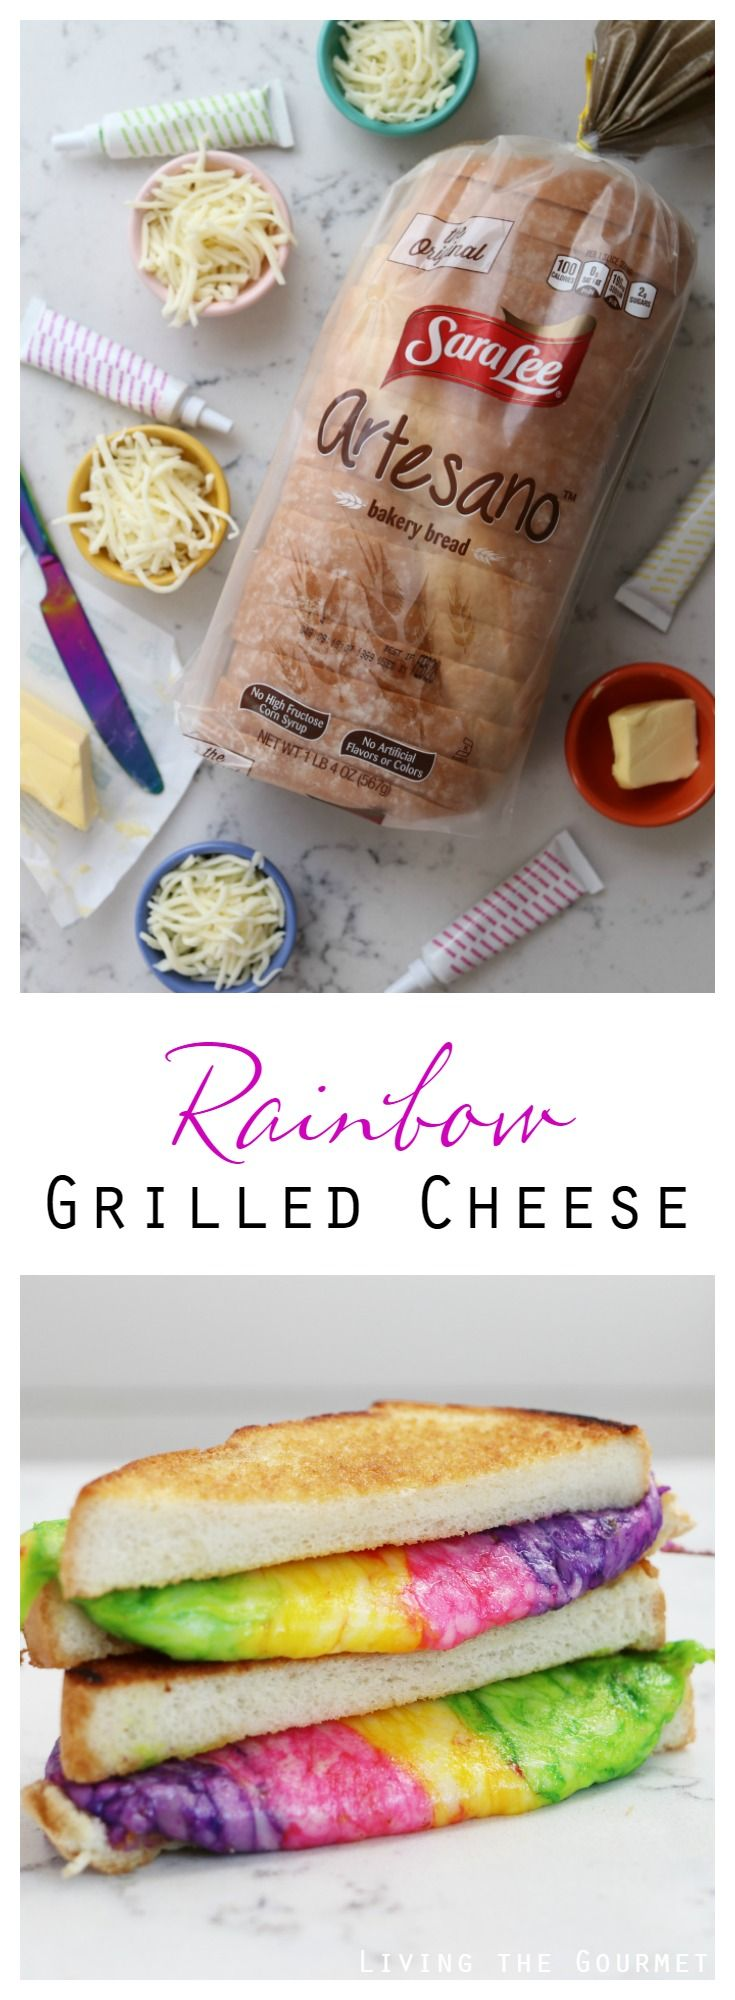 Today is National Grilled Cheese Day and we're celebrating with Sandwich Expert MacKenzie Smith who has partnered up with Sarah Lee Bread to create the most delicious grilled cheese sandwiches! You may be familiar with MacKenzie Smith if you follow along with Martha Stewart, Real Simple Magazine, Buzzfeed, Eater or The Huffington Post. She has...